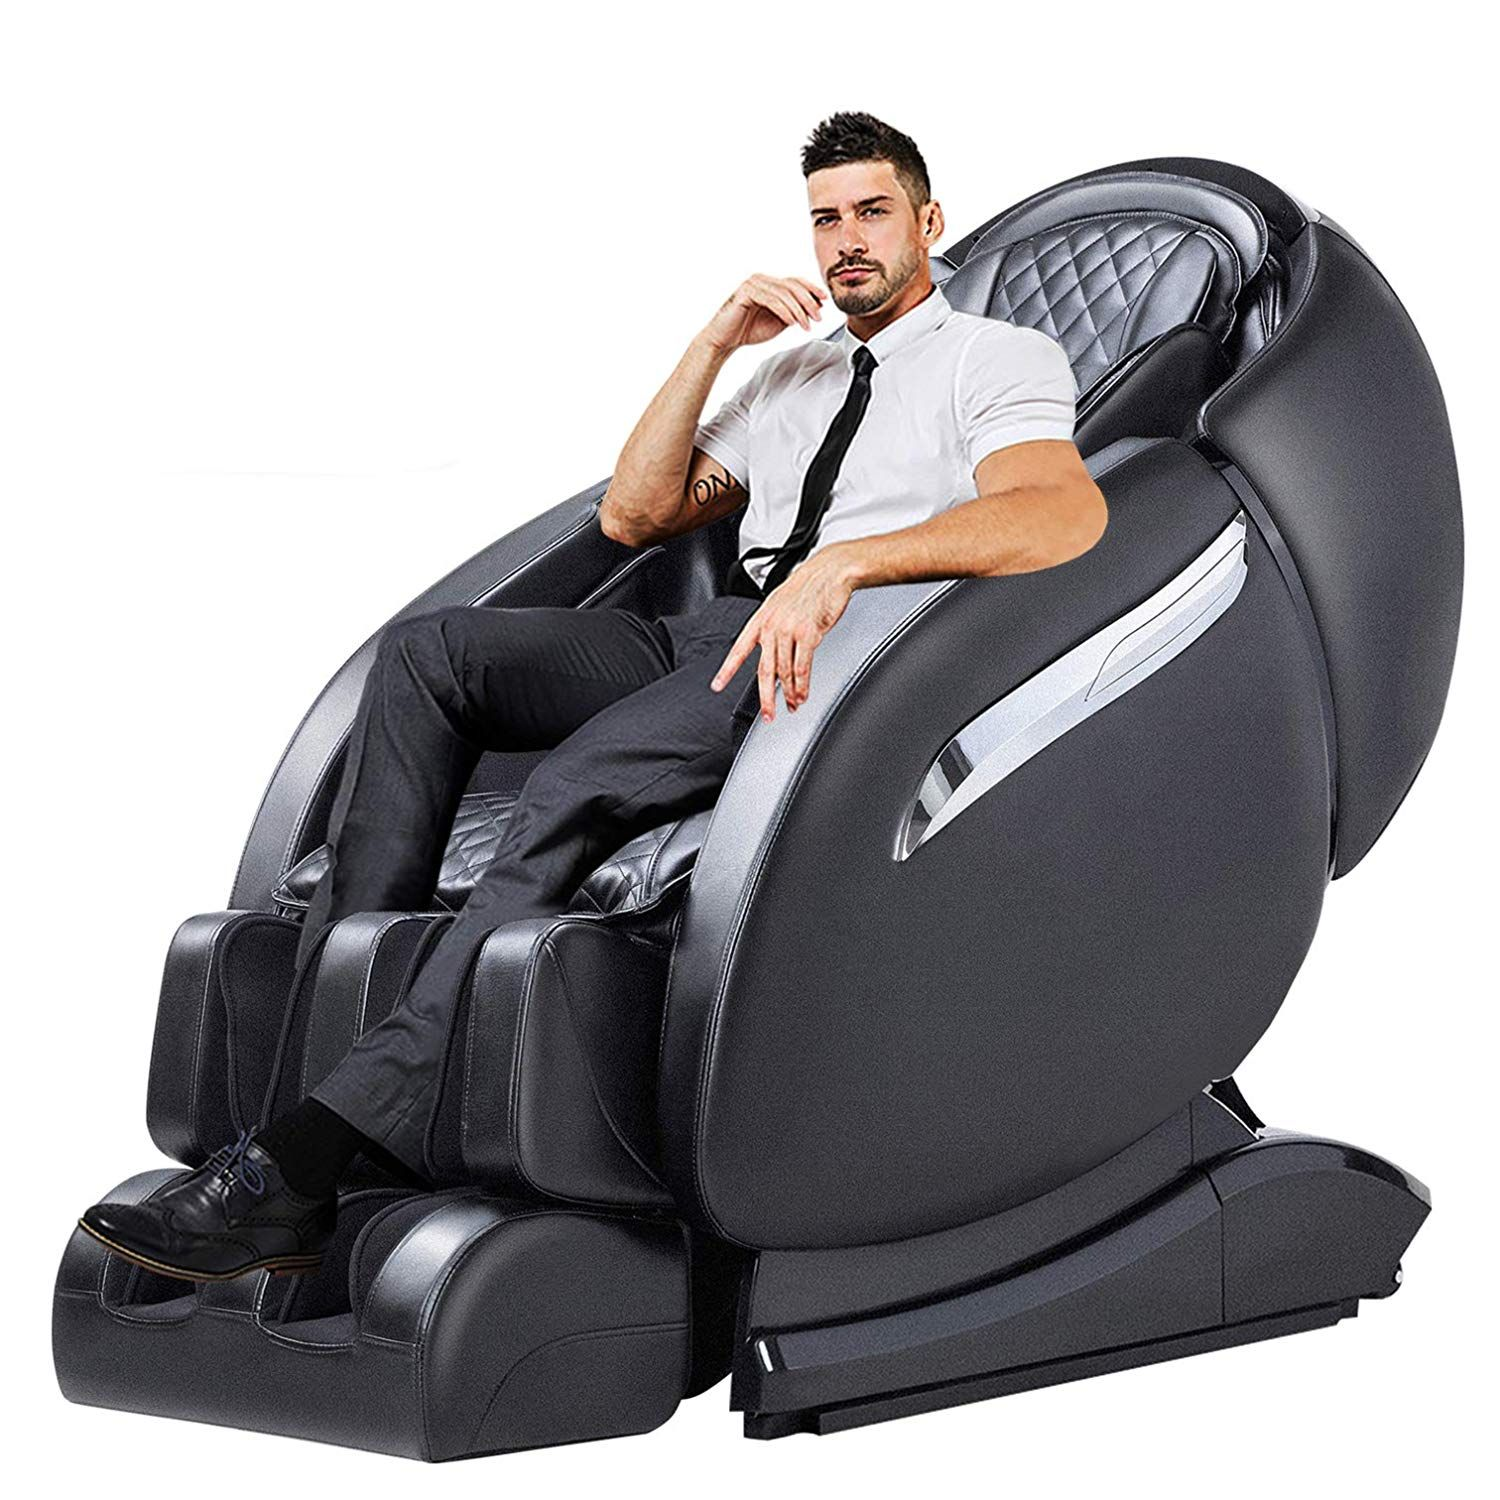 Top 10 Best Full Body Massage Chair Reviews In 2019 Electric Massage Chair Massage Chair Full Body Massage